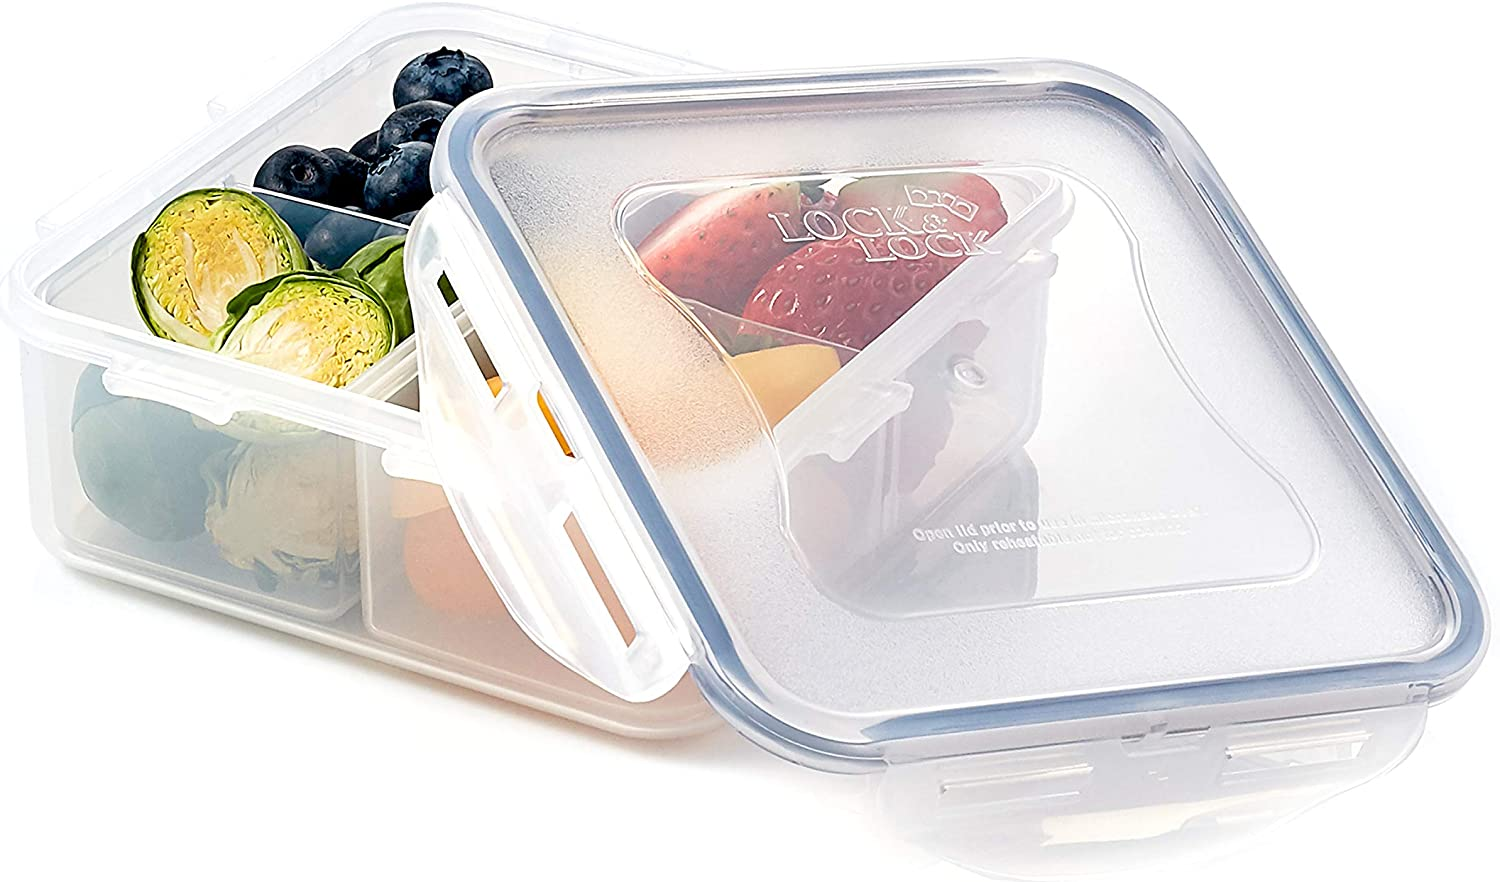 LOCK & LOCK Easy Essentials On The Go Meal Prep Lunch Box, Airtight Containers with Lid, BPA Free, Square (4 Section) -29 oz, Clear